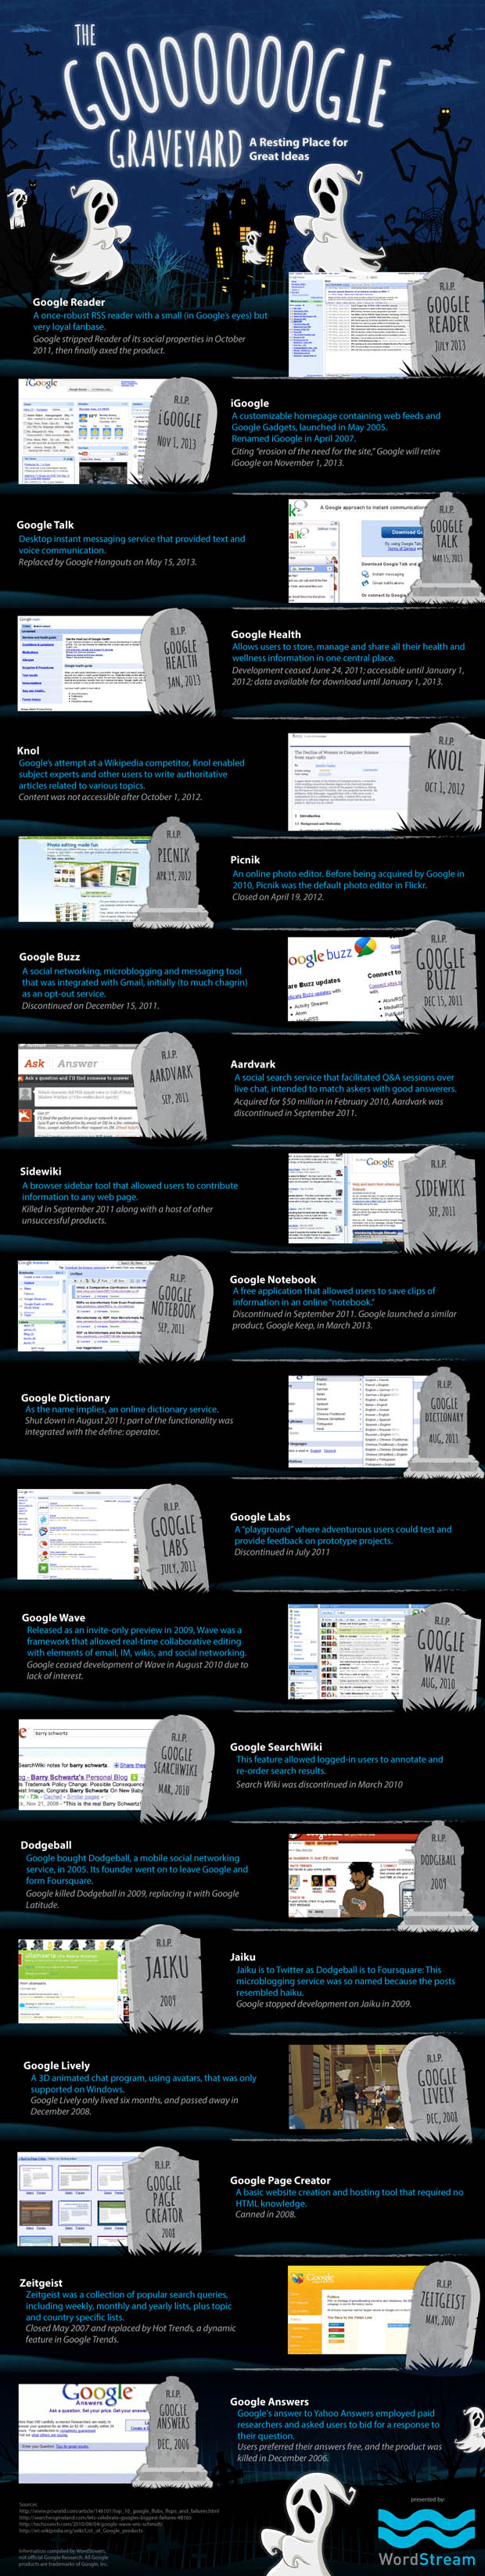 google-services-killed